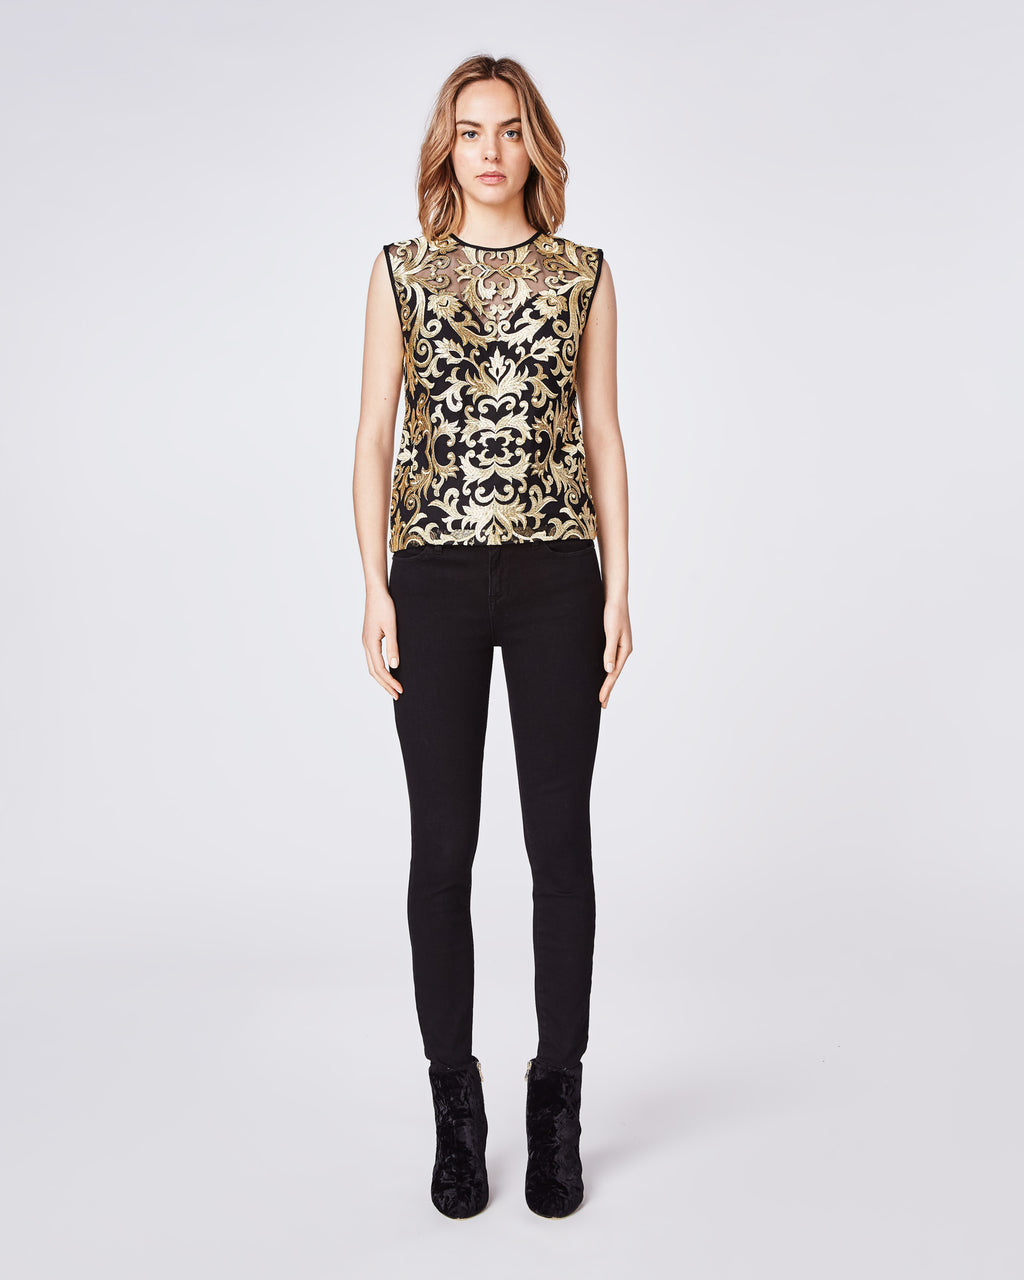 BK10273 - SCROLL EMBROIDERY SLEEVELESS TOP - tops - blouses - When Uptown meets Downtown. This sleeveless blouse is cut in a sleek silhouette and features gold embroidery. Style with denim or black skinnies. Final Sale